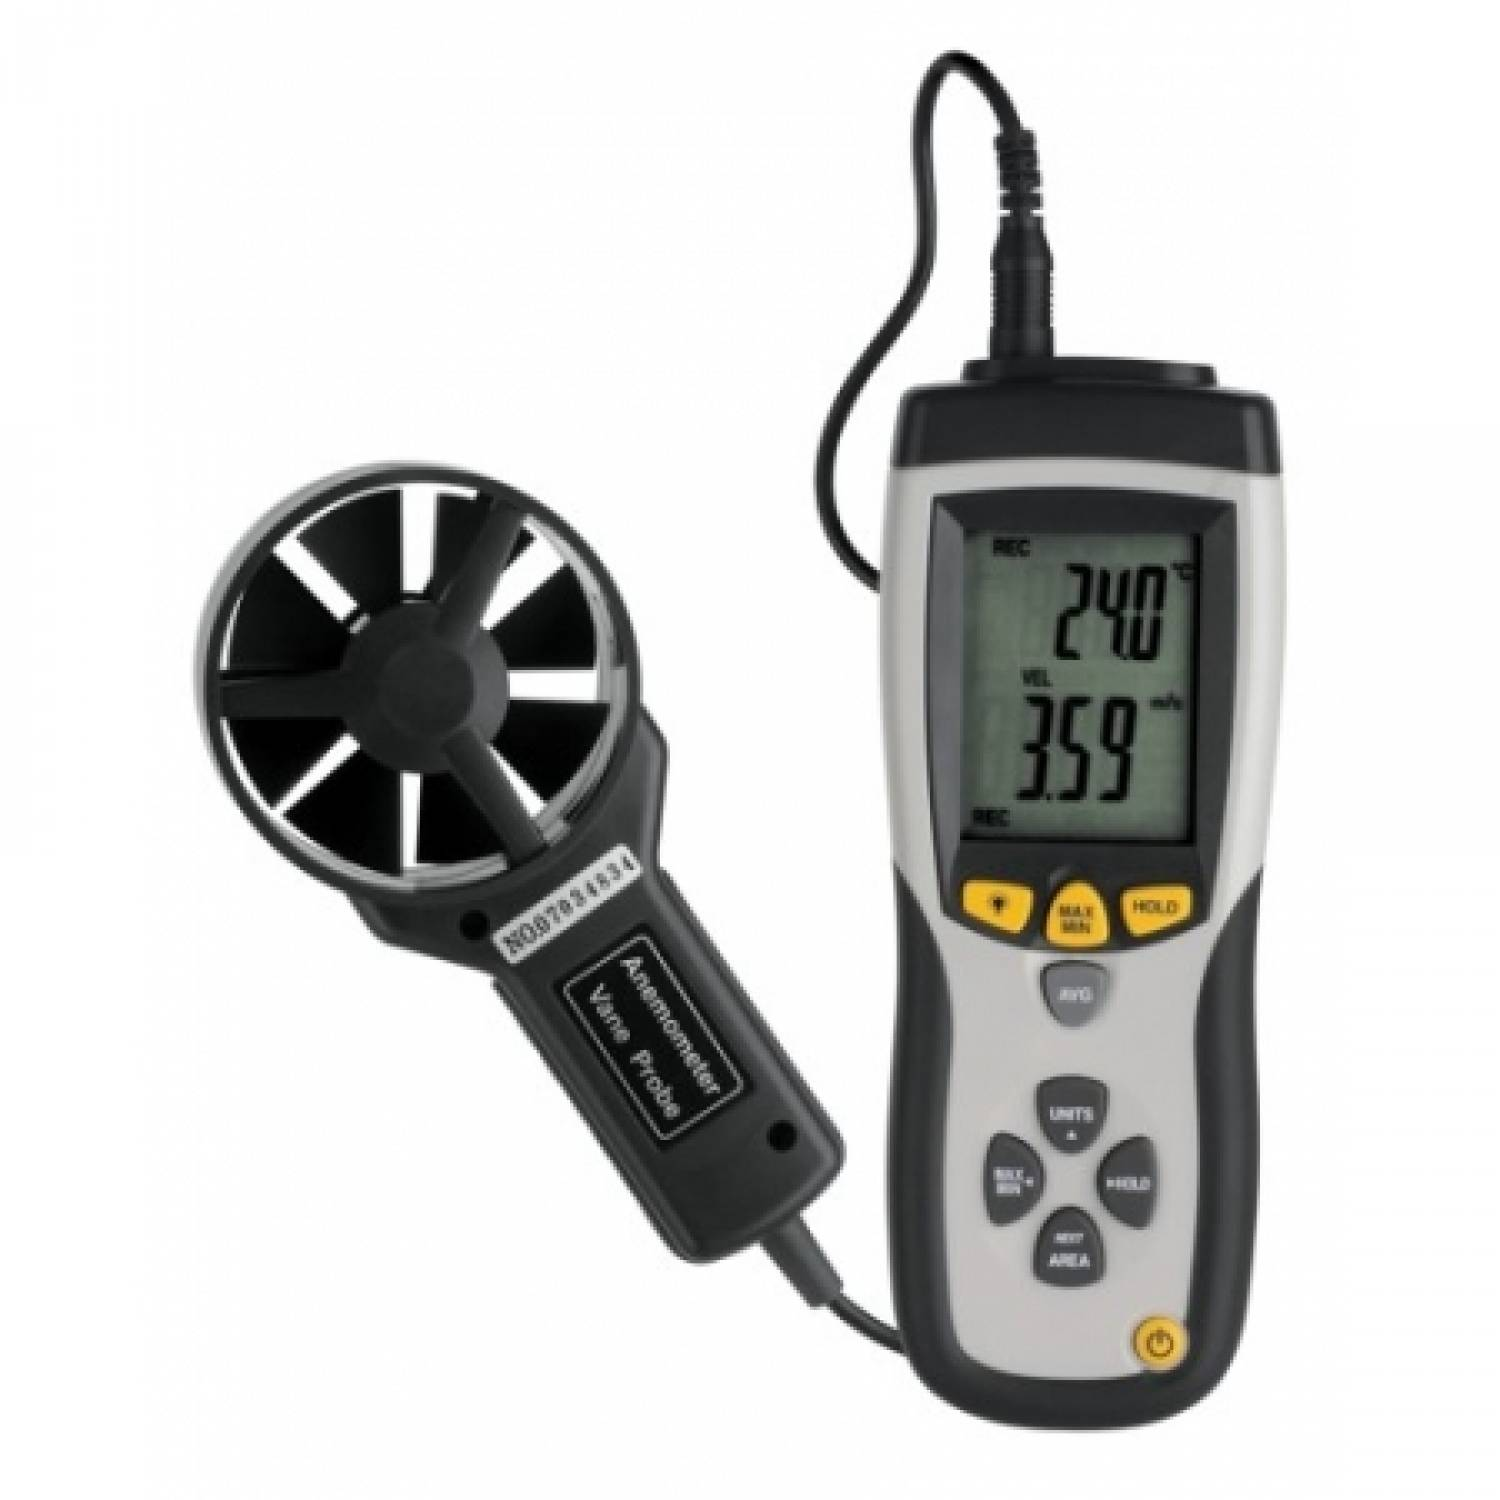 Outdoor Boilers of Europe Anemometer met temperatuur